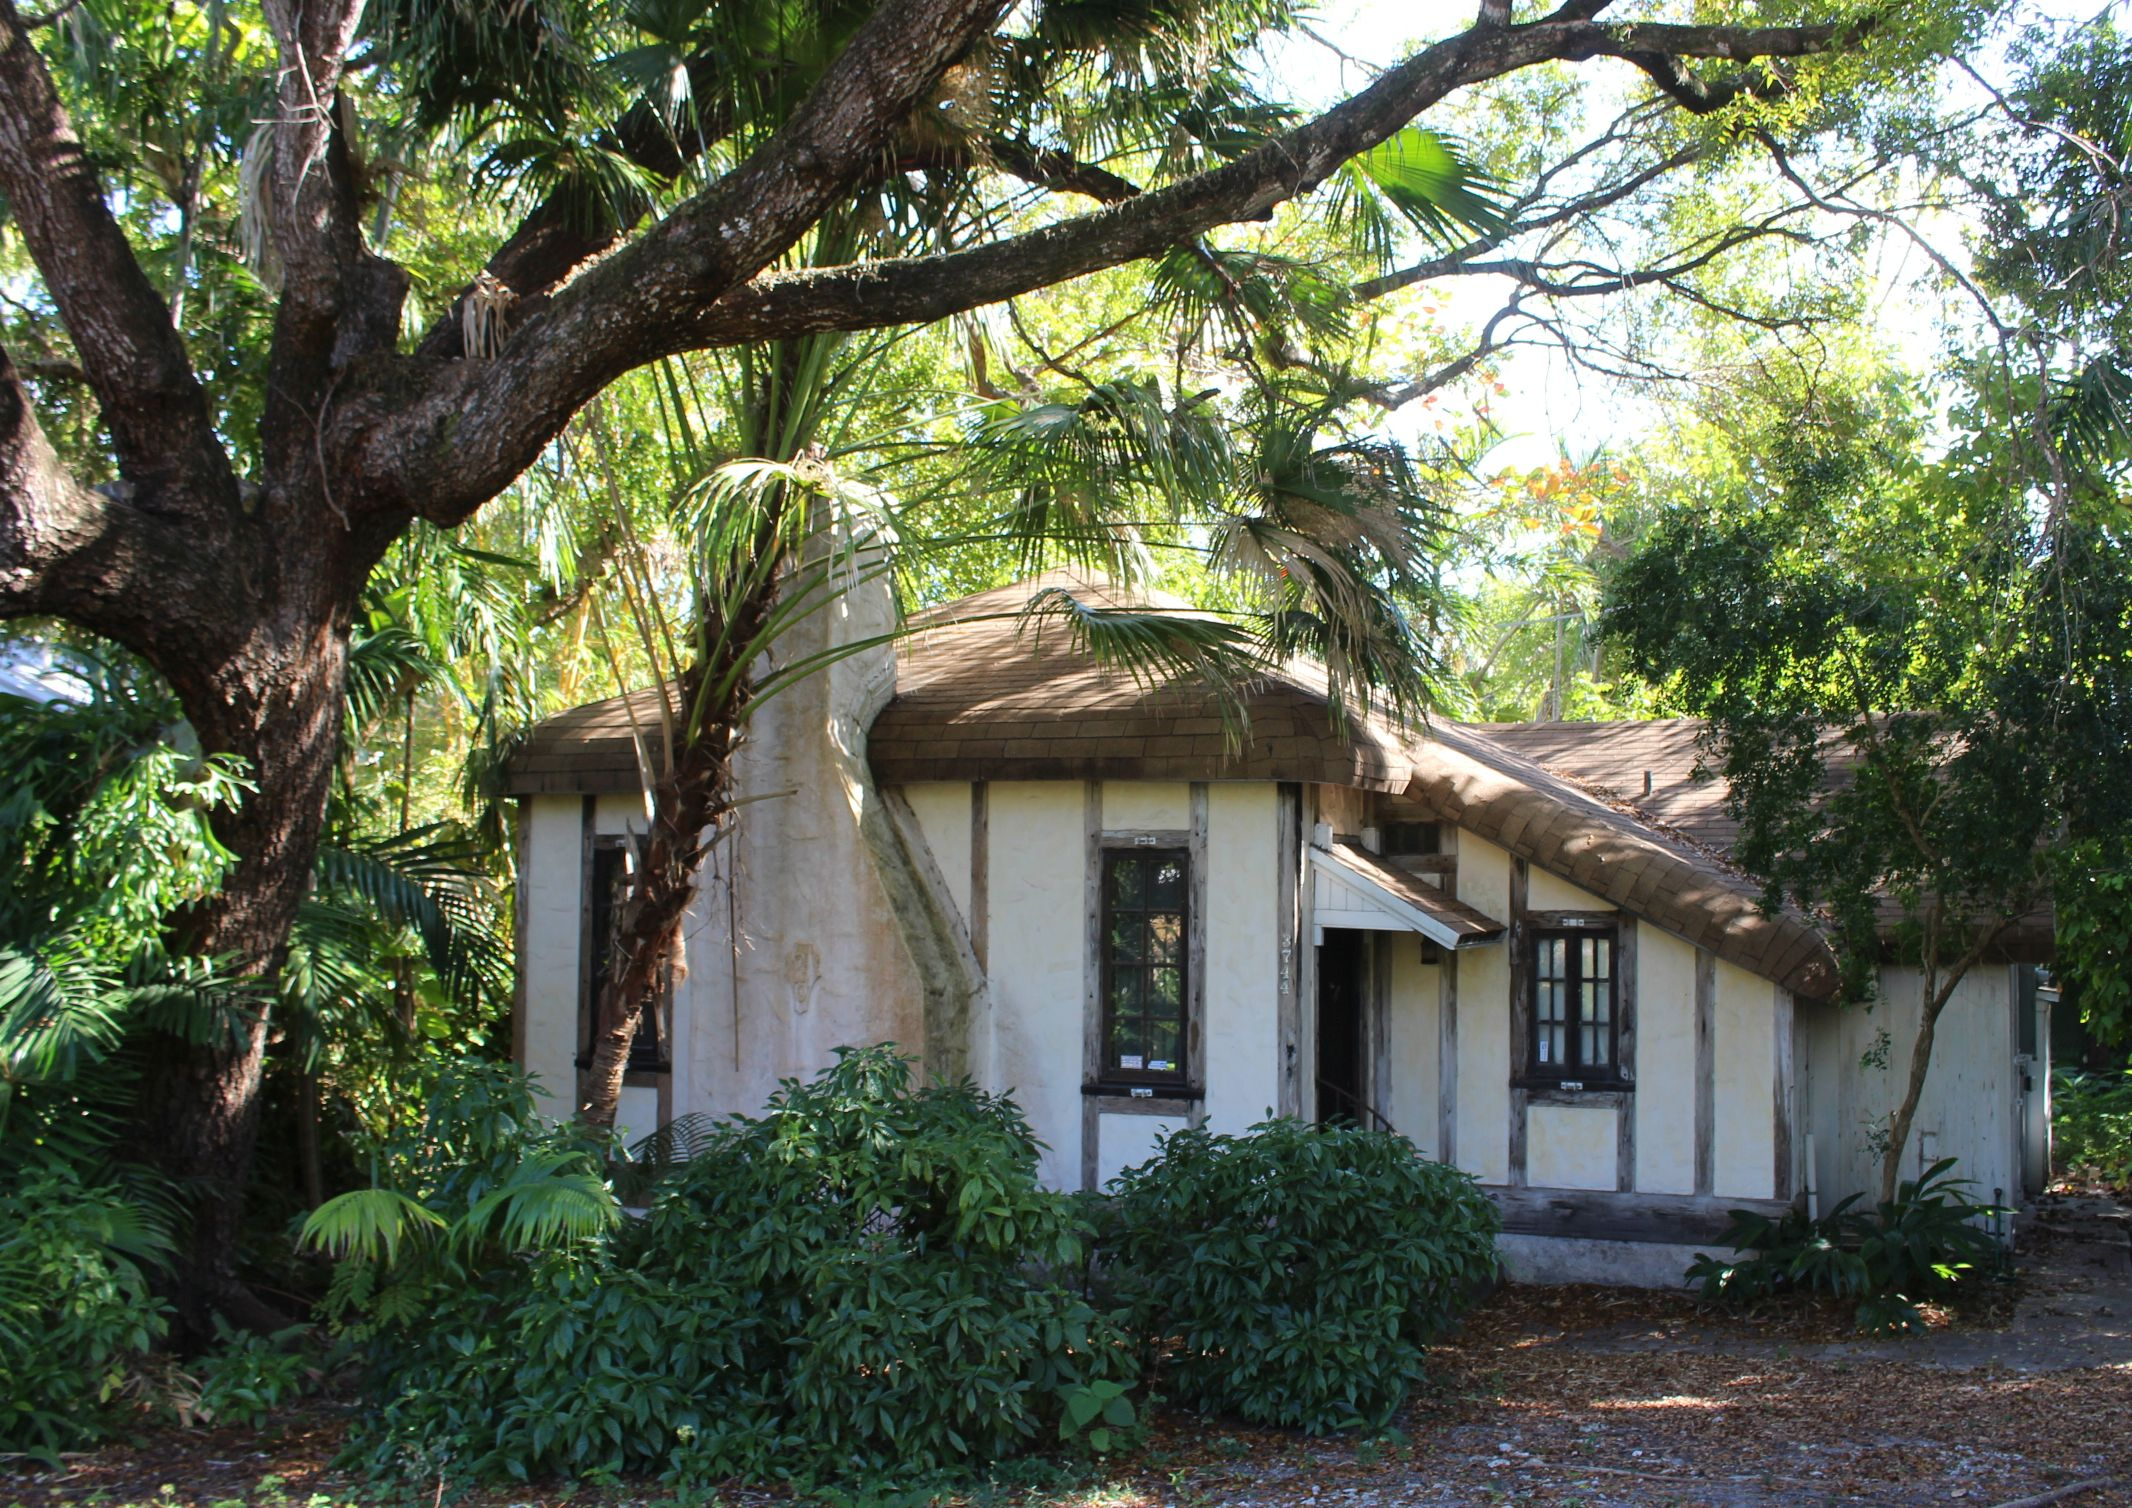 Douglas lived in a modest cottage in the Coconut Grove area south of downtown Miami. Photo by  Edwin Grosvenor.